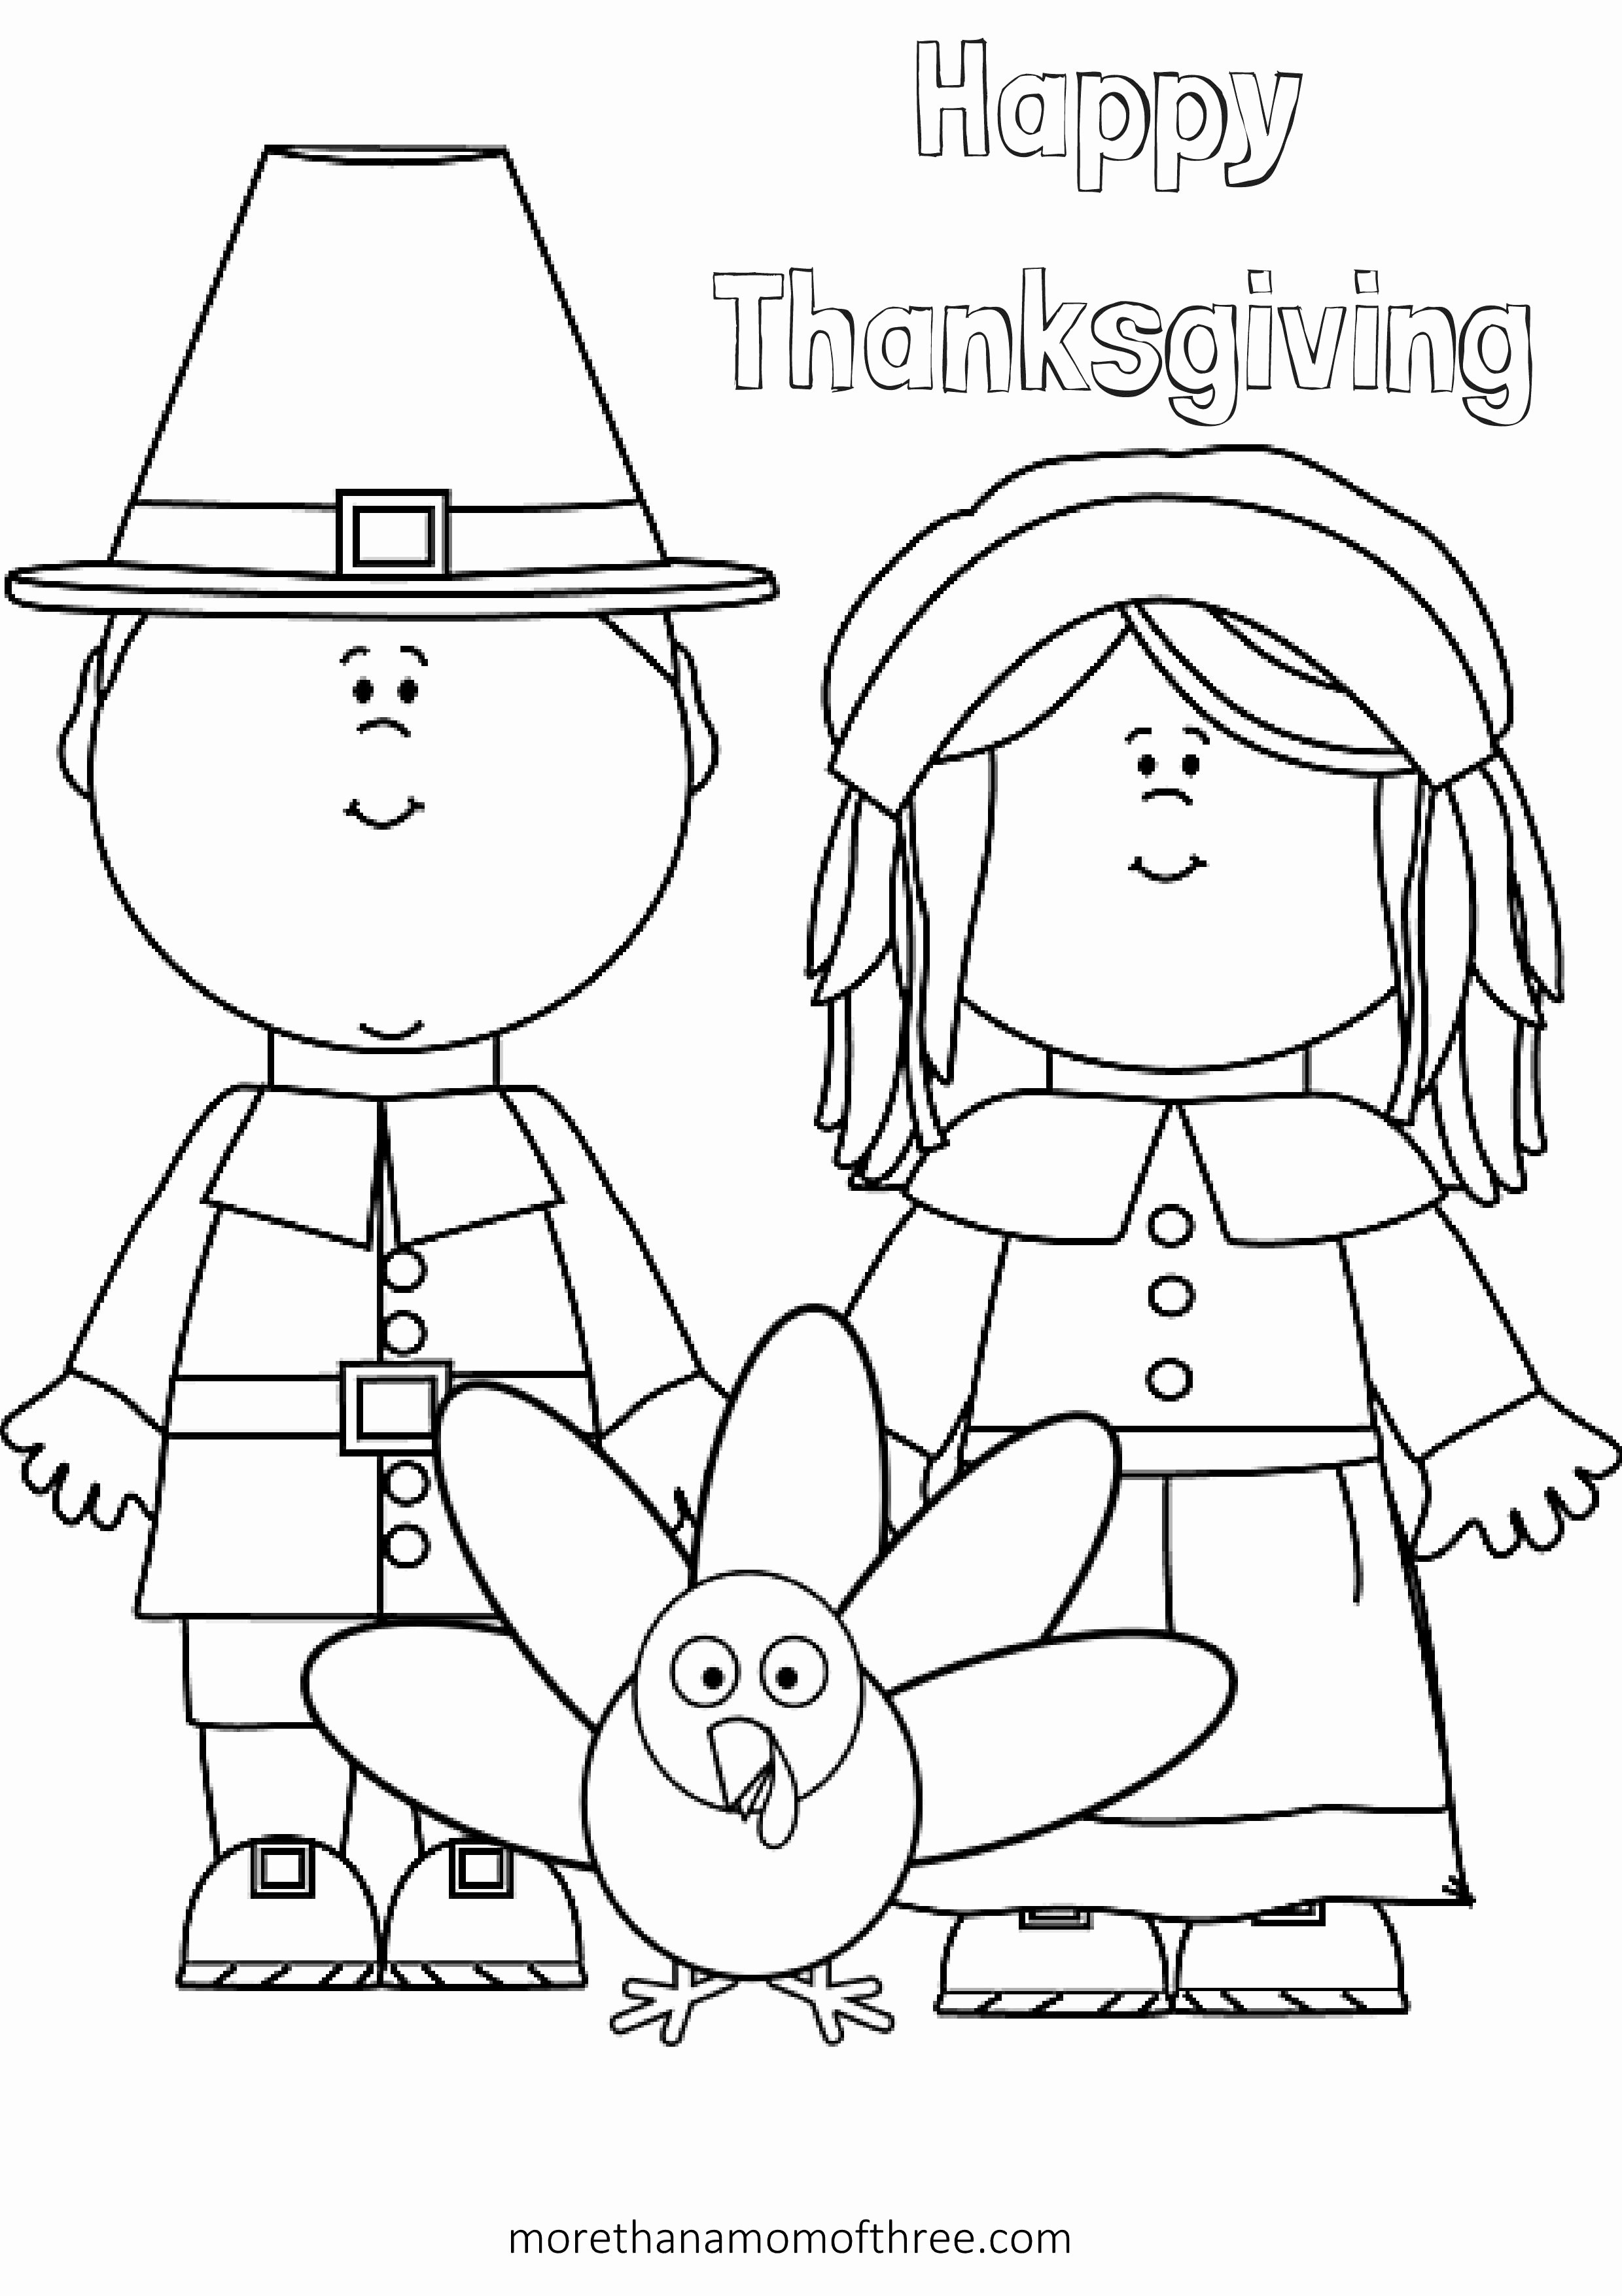 Cherokee Indian Coloring Pages  to Print 14m - Free For kids